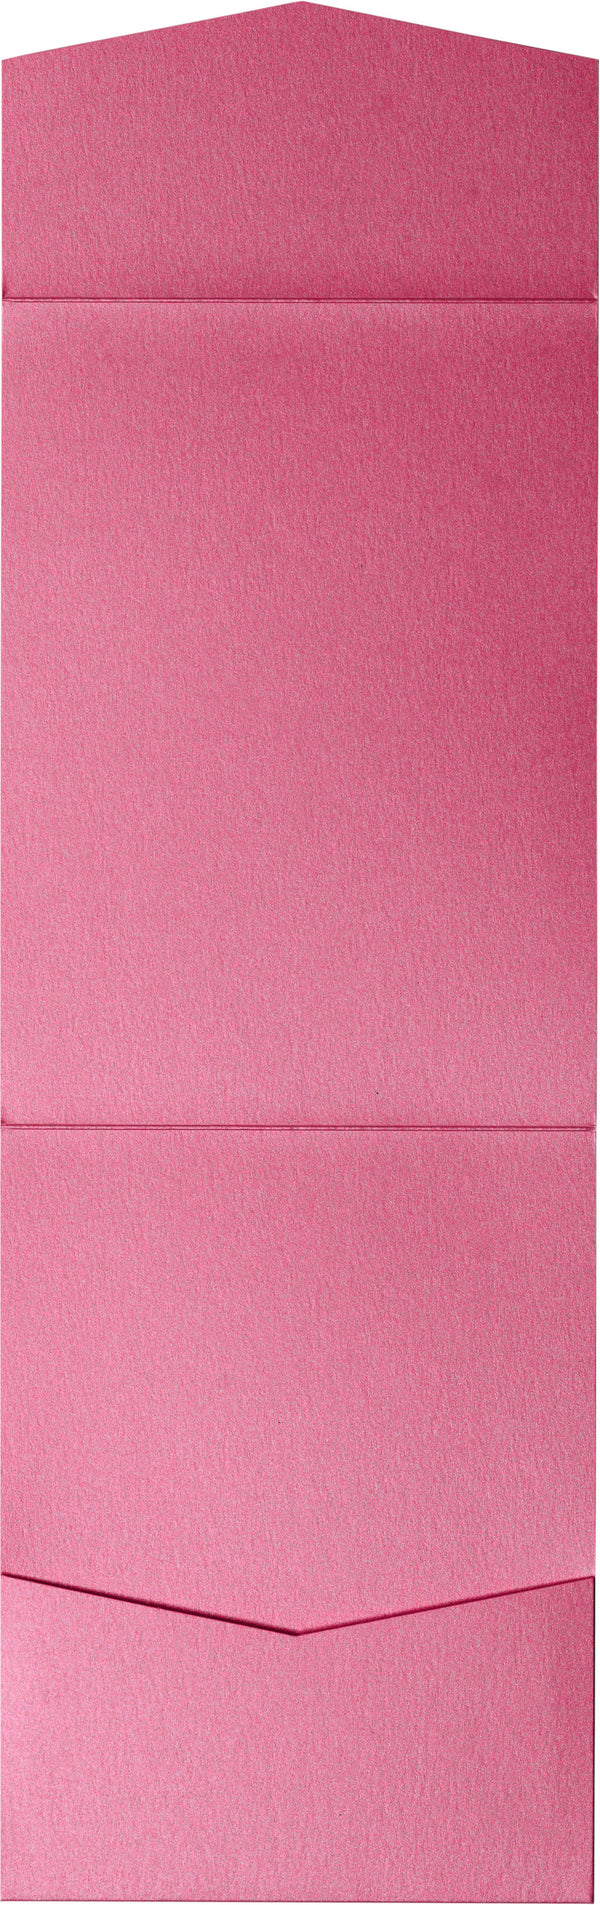 Pink Azalea Metallic Pocket Invitation Card, A7 Cascade